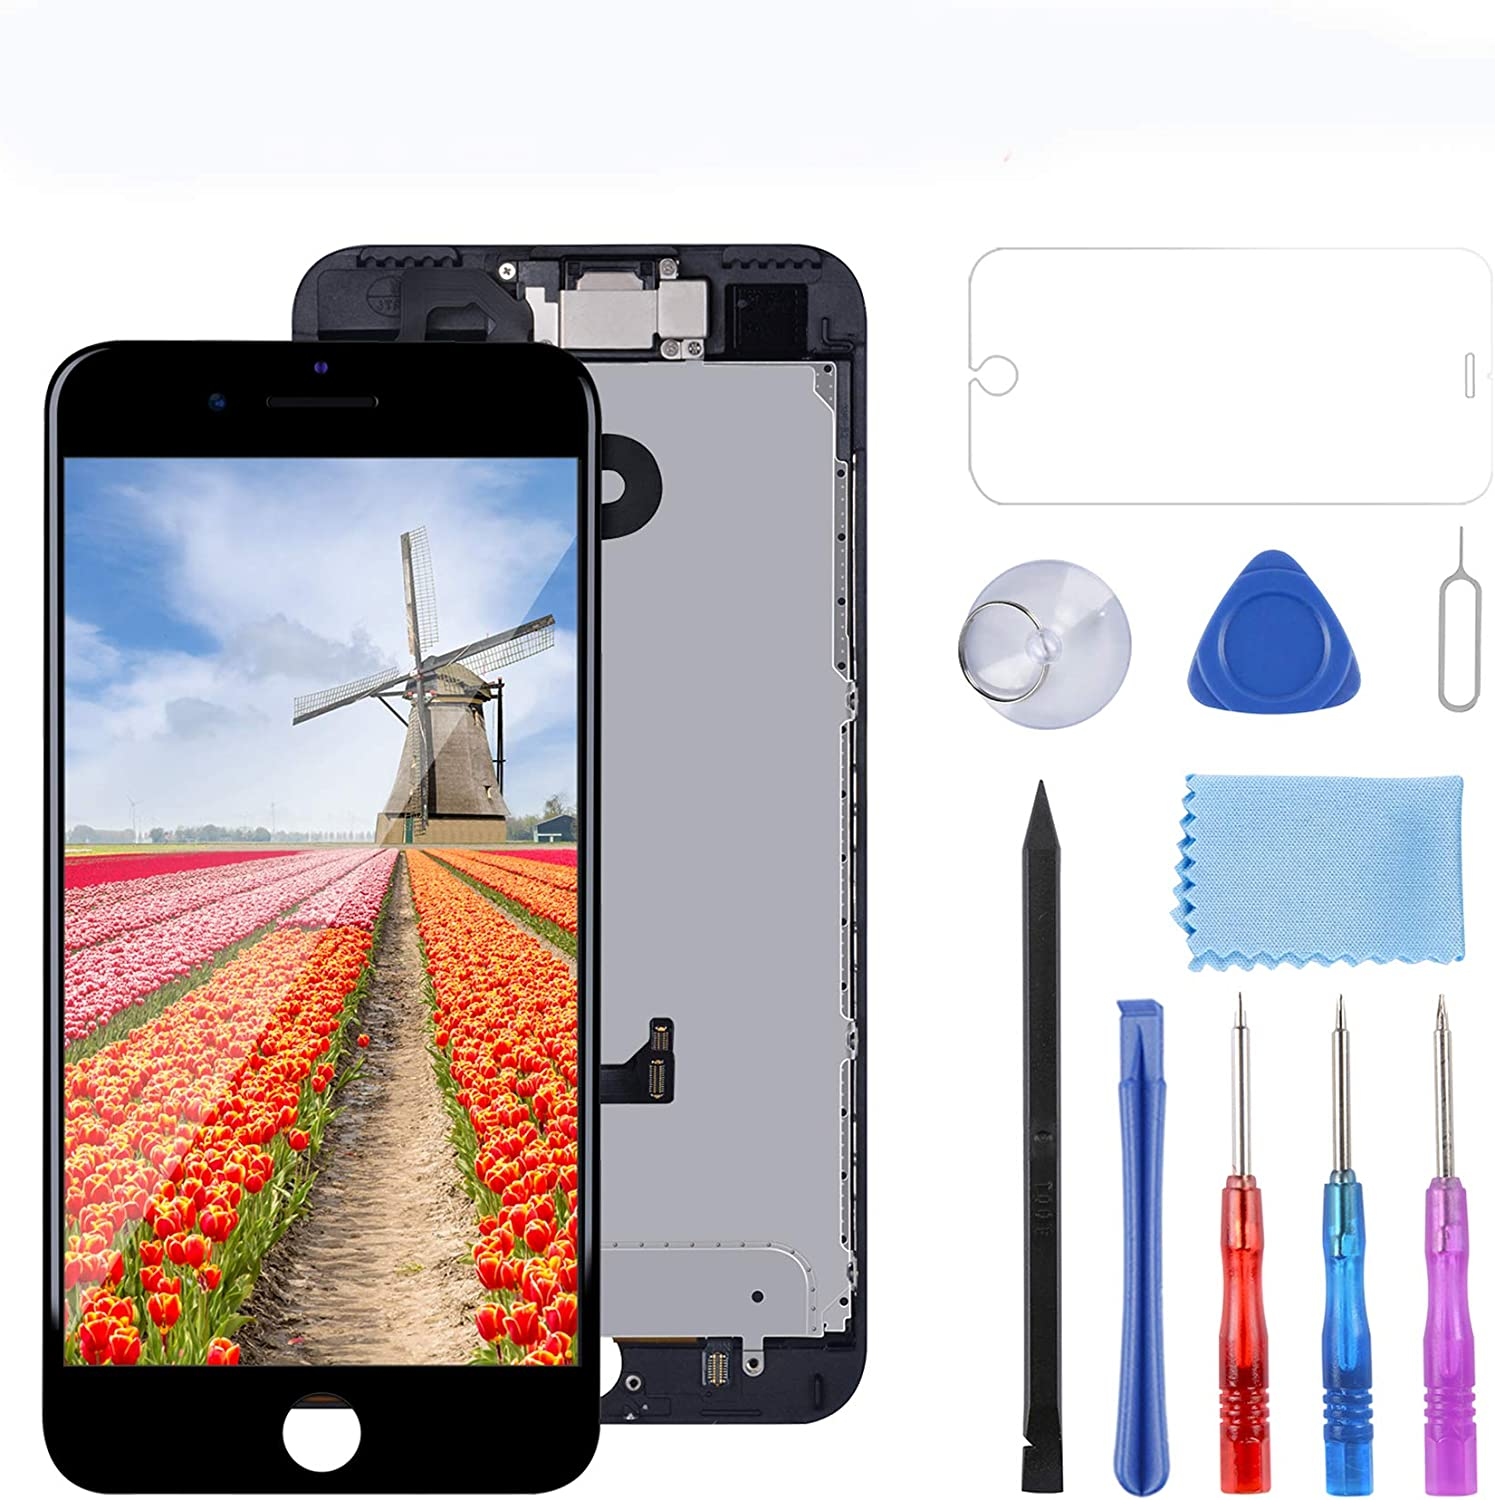 YPLANG Compatible with iPhone 7 Plus Screen Replacement Black 5.5 Inch LCD Display with 3D Touch Screen Digitizer Frame Full Assembly with Proximity Sensor, Earspeaker and Front Camera, Repair Tools